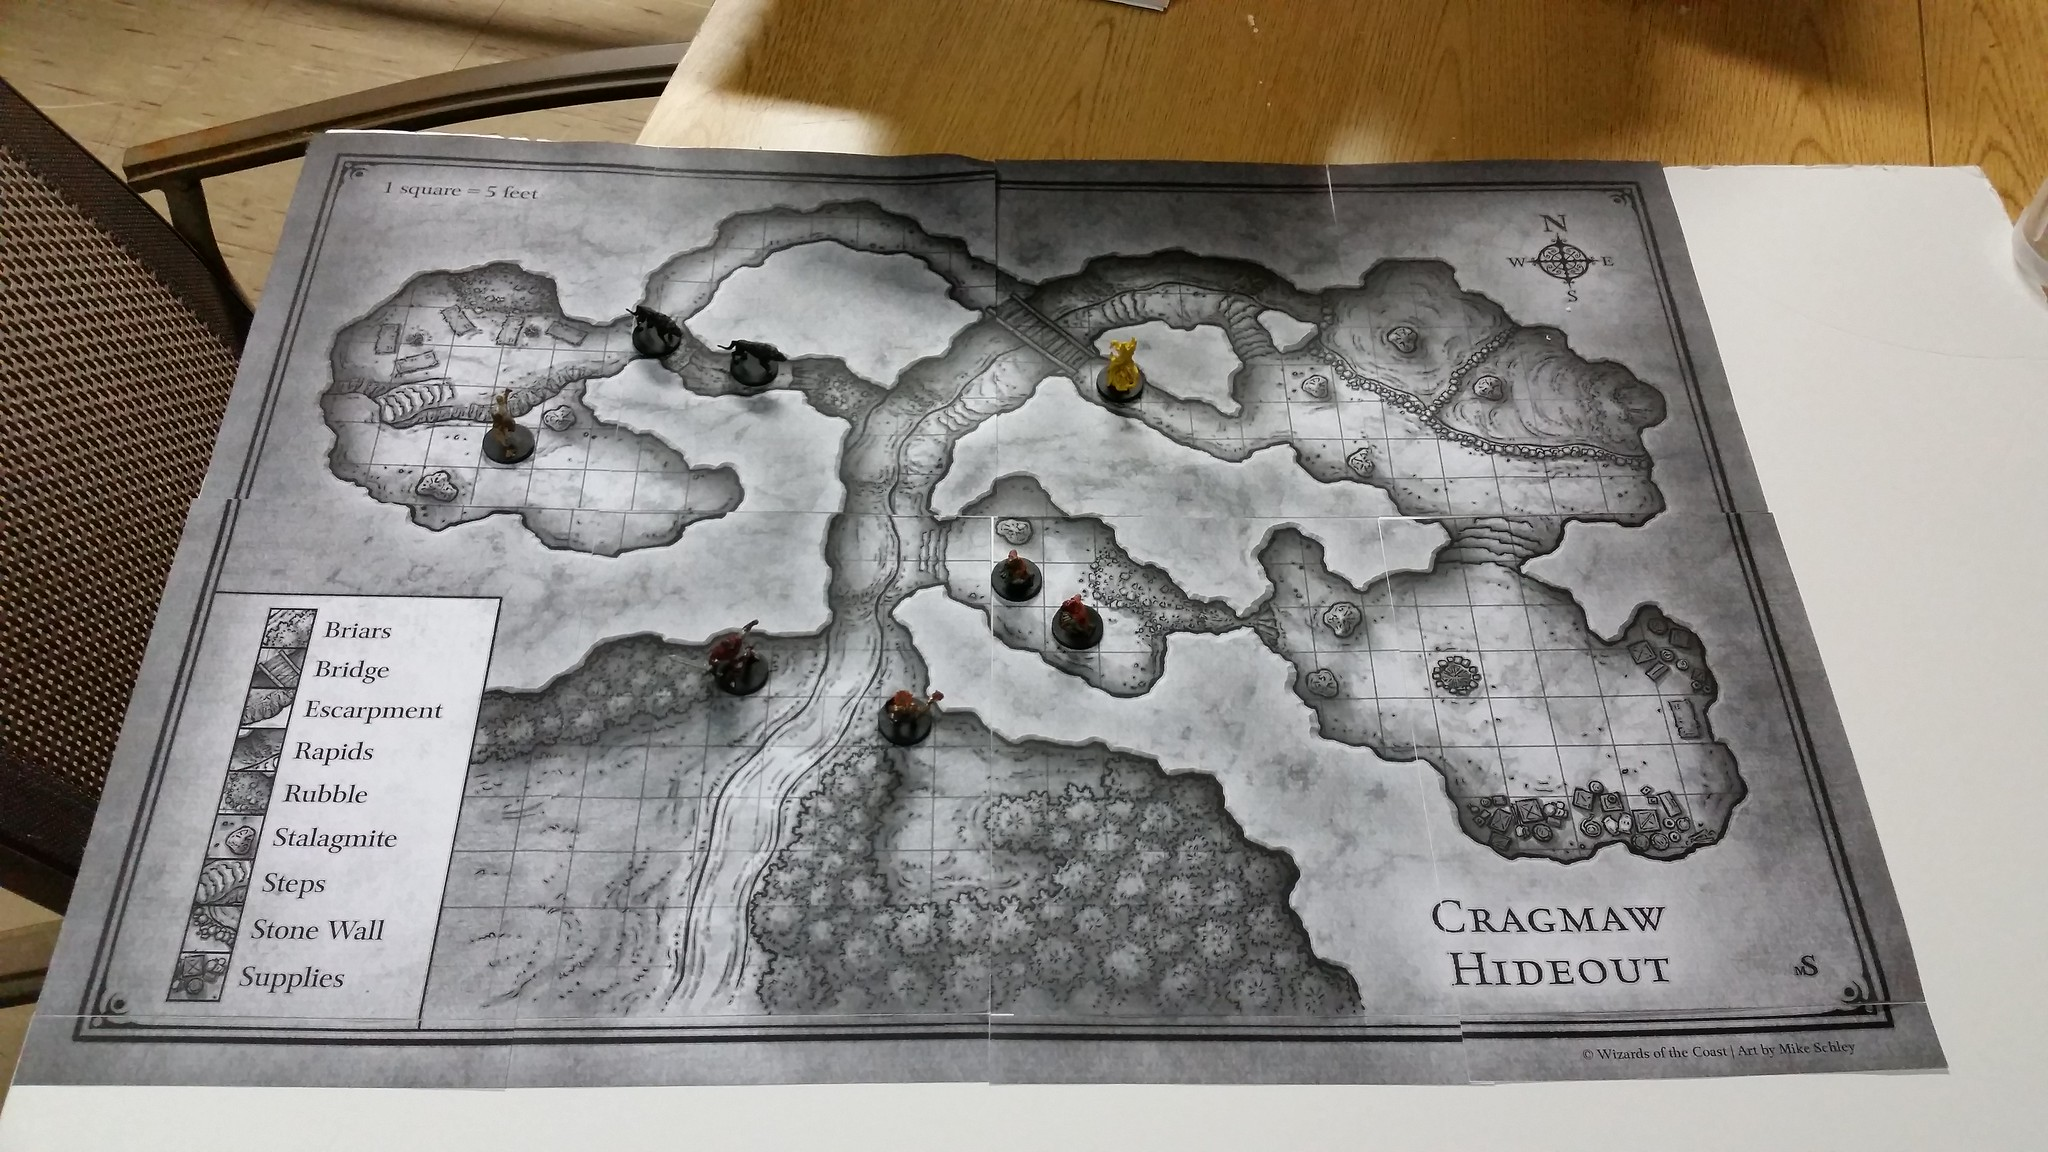 picture relating to Redbrand Hideout Map Printable identified as Mephs Gaming Prep DMs Craft